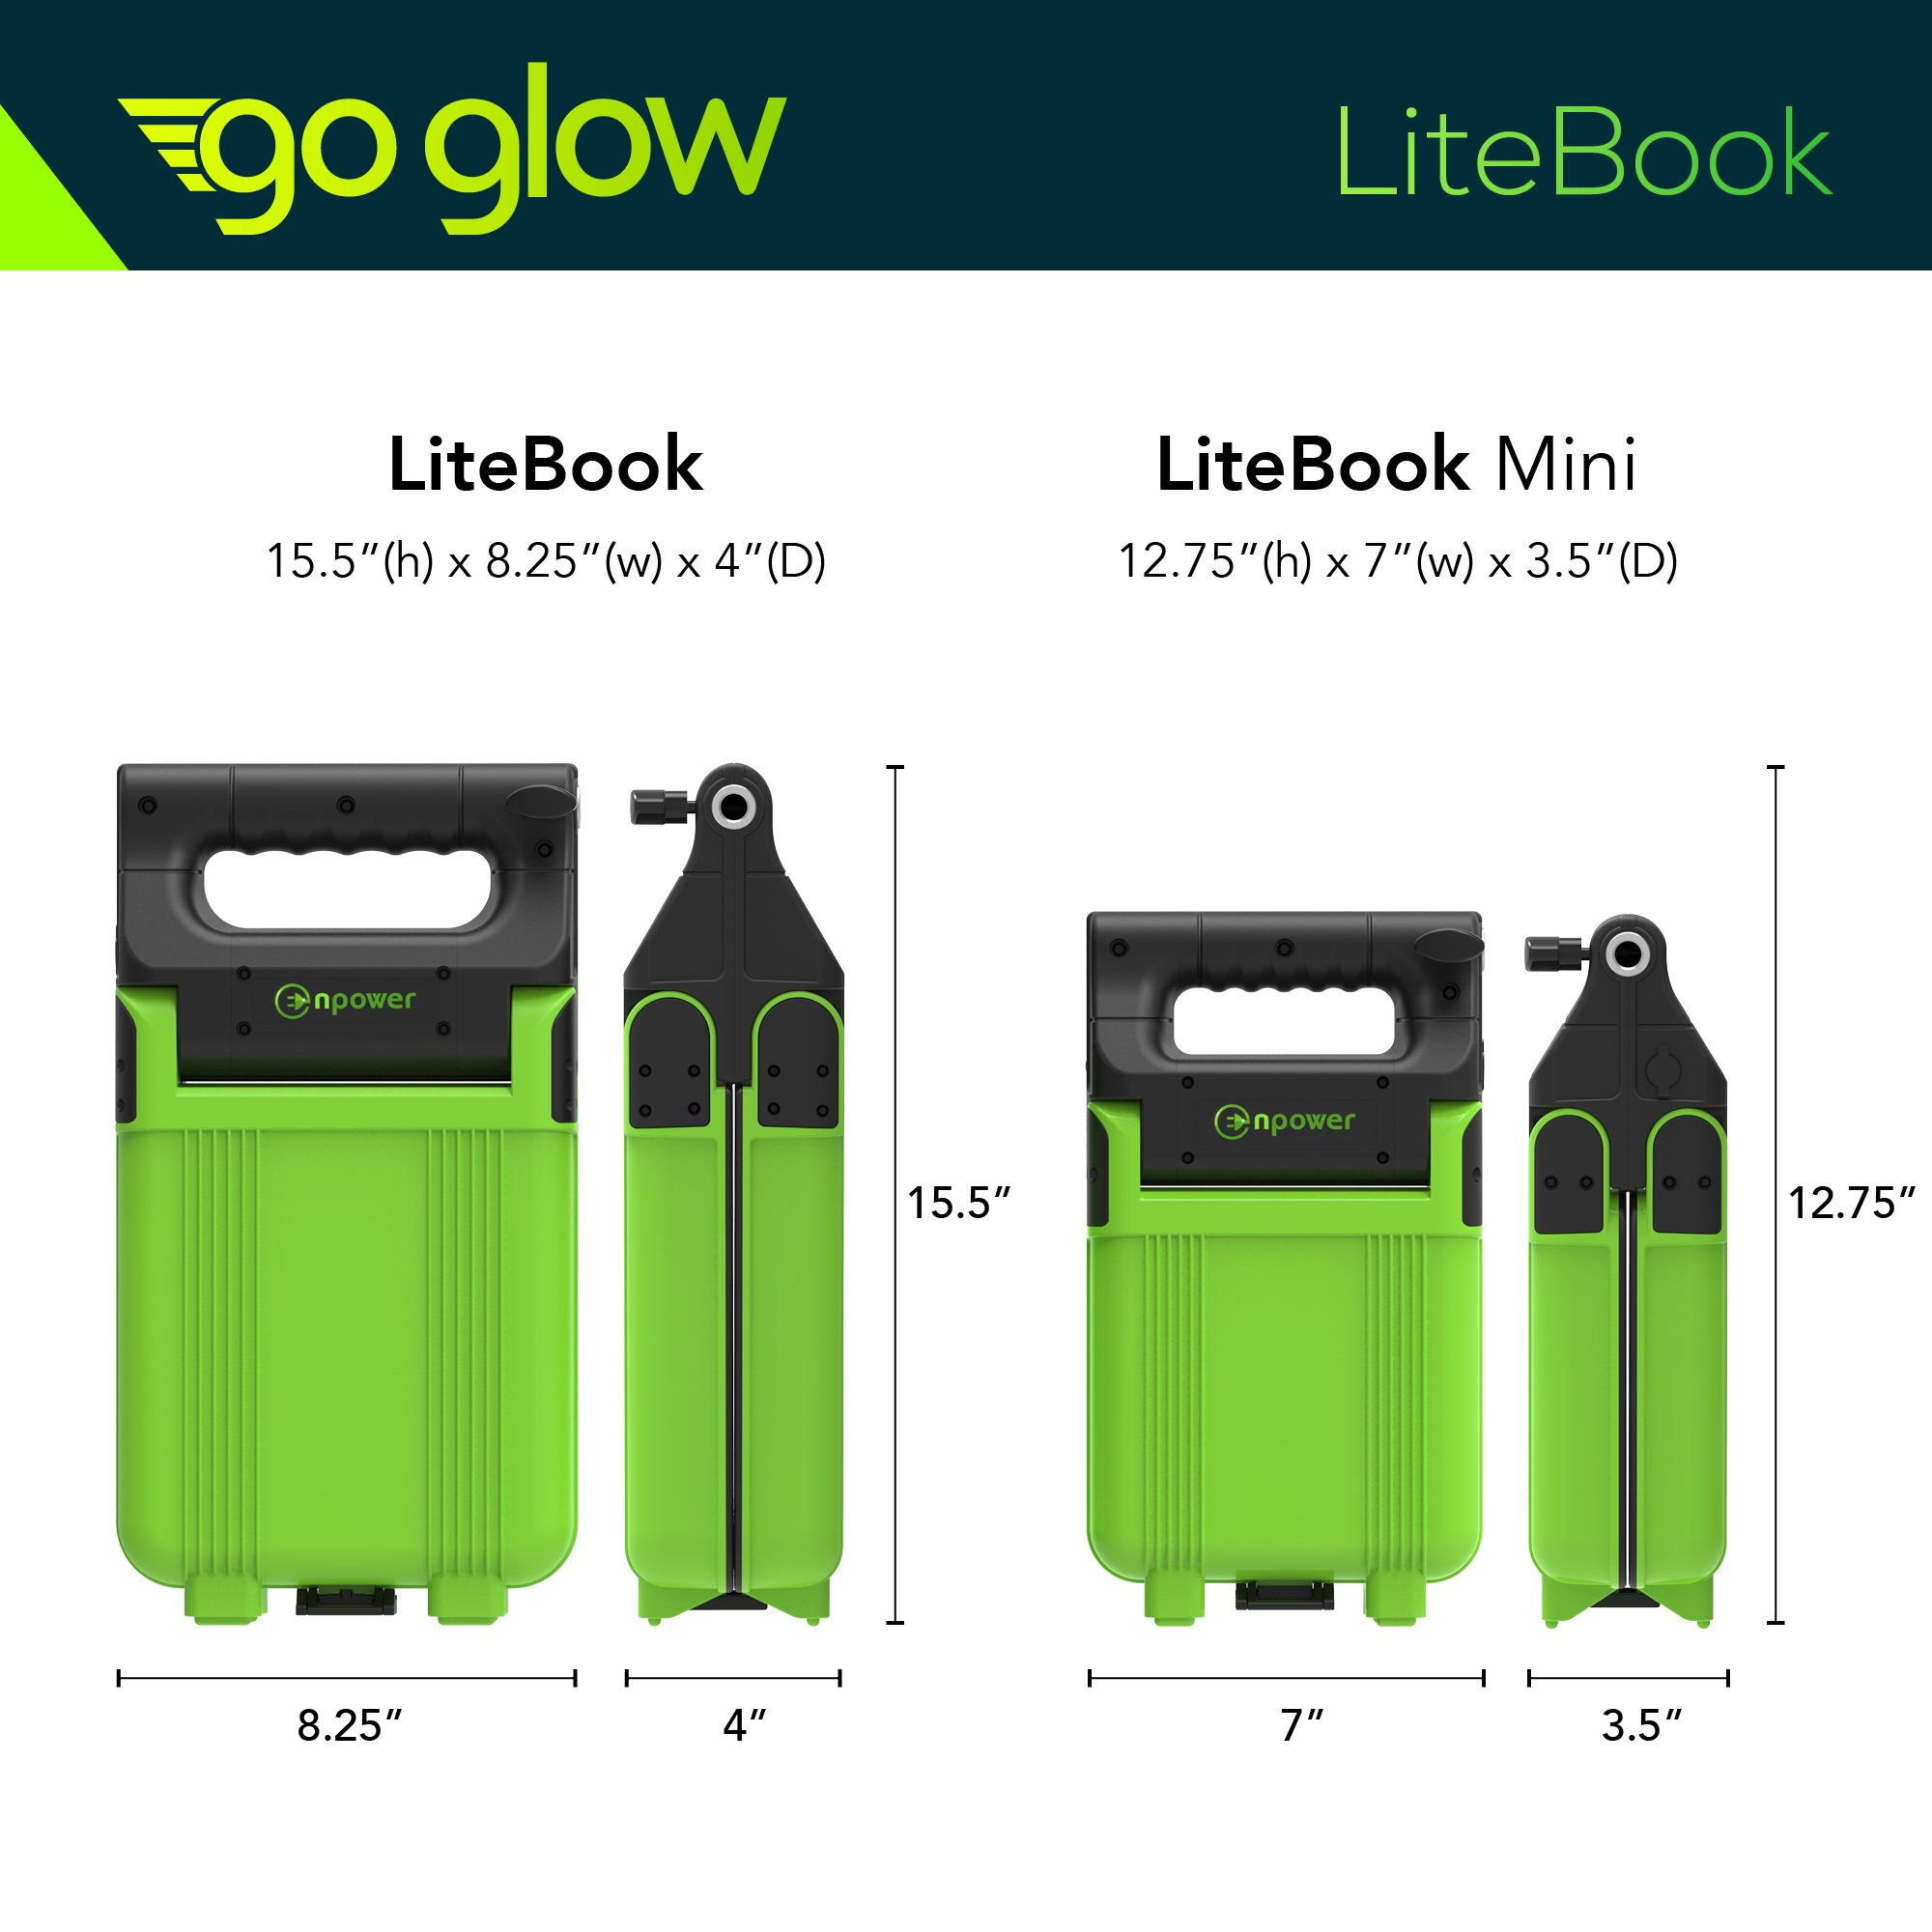 GoGlow LiteBook Bundle - Upgraded 2.0 TRIPOD INCLUDED - 30W Portable Rechargeable Day Light White Light (5000-5500k) Work Light, Camping, Garage or Auto Repair, Emergency (Green) by Enpower (Image #5)